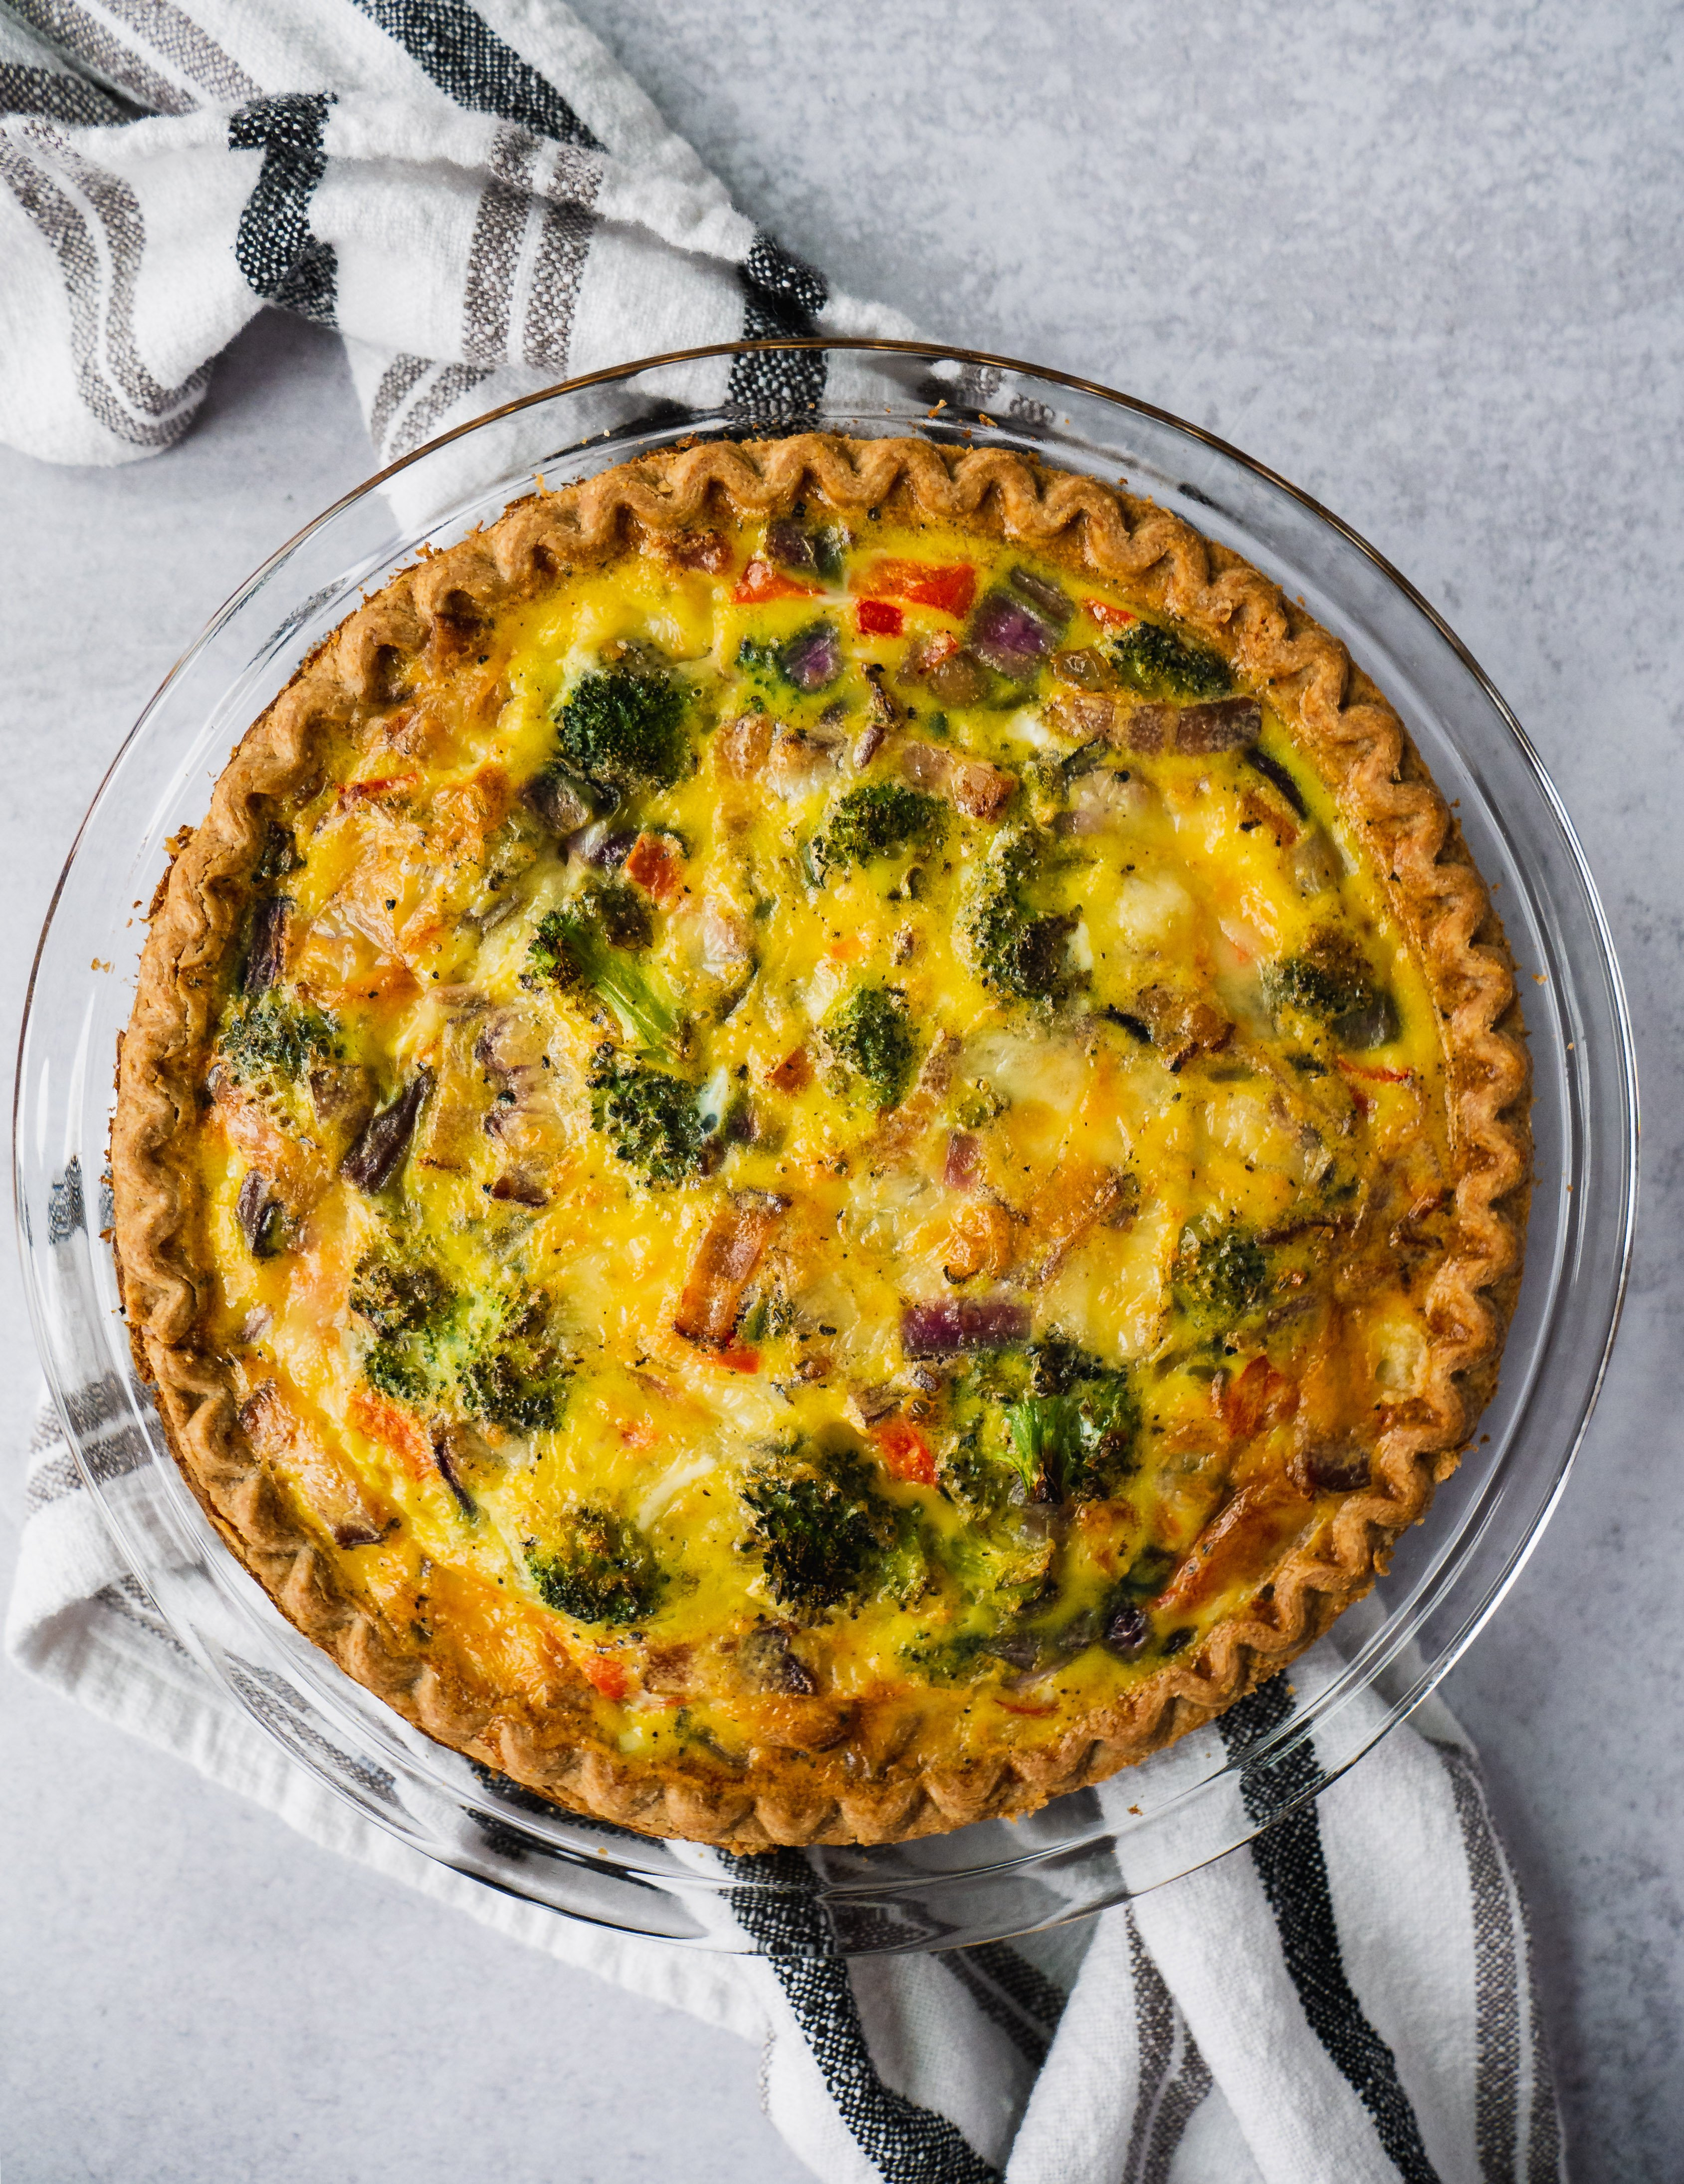 A broccoli quiche with bacon fresh out of the oven sitting on top of a dish towel.